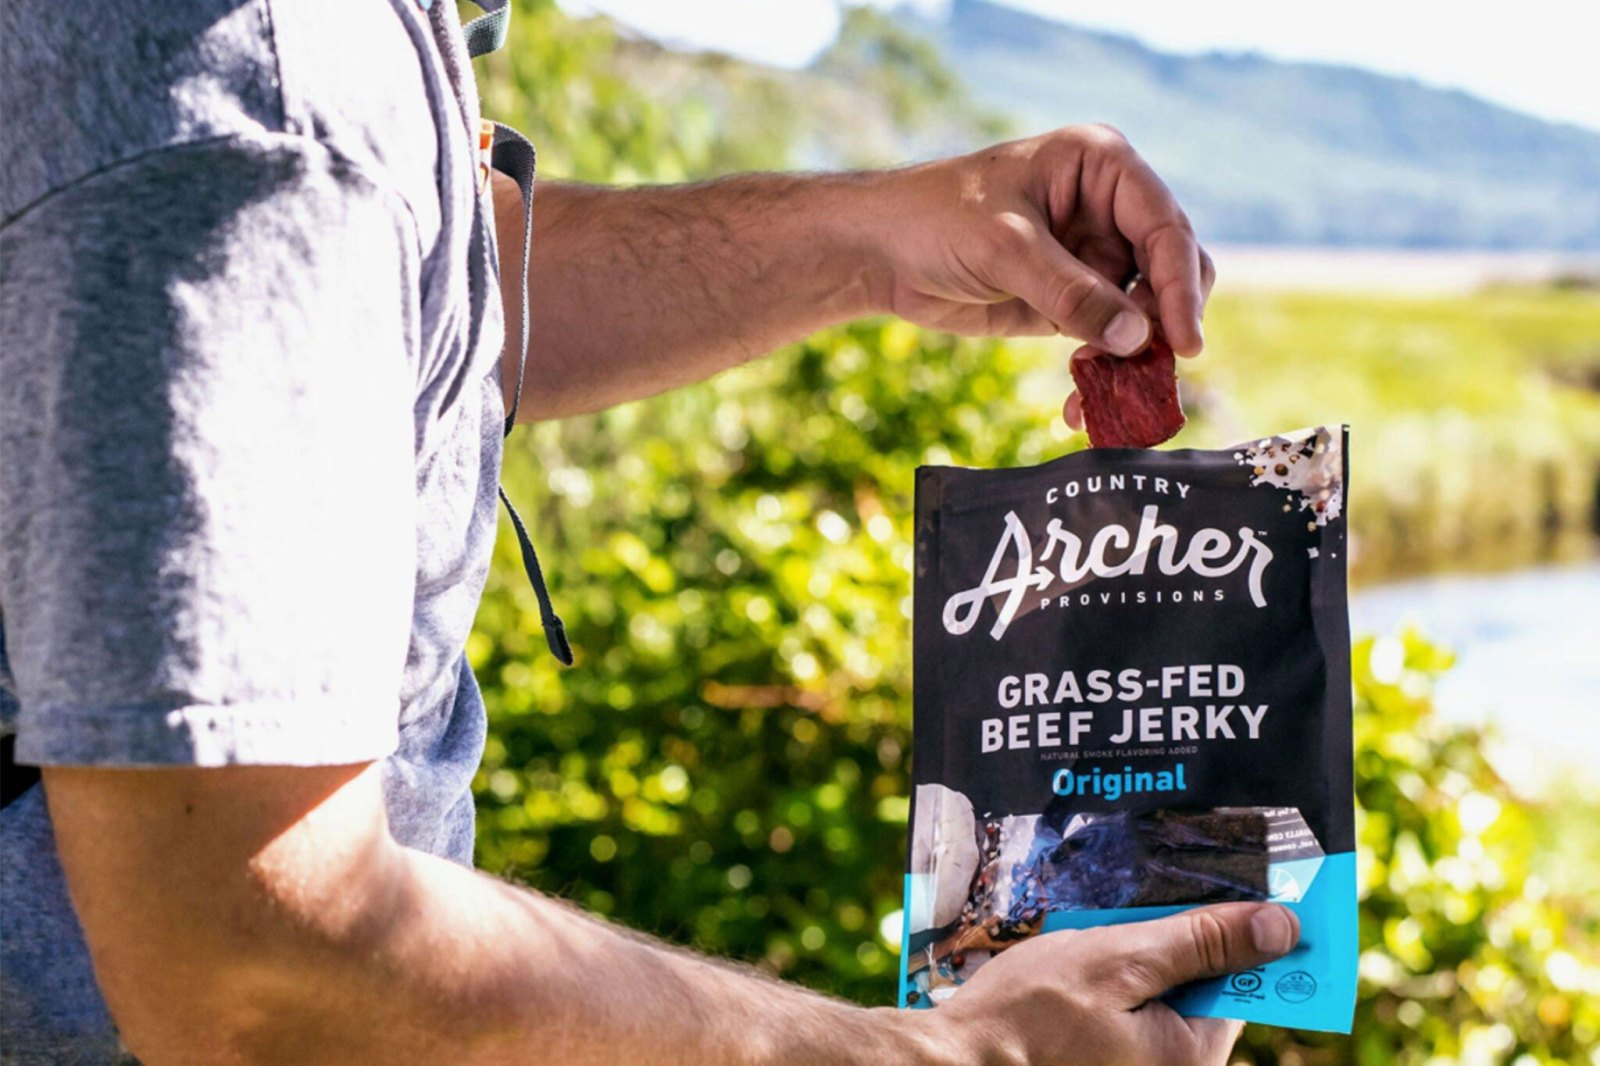 Man eating Country Archer Grass-Fed Beef Jerky in outdoors